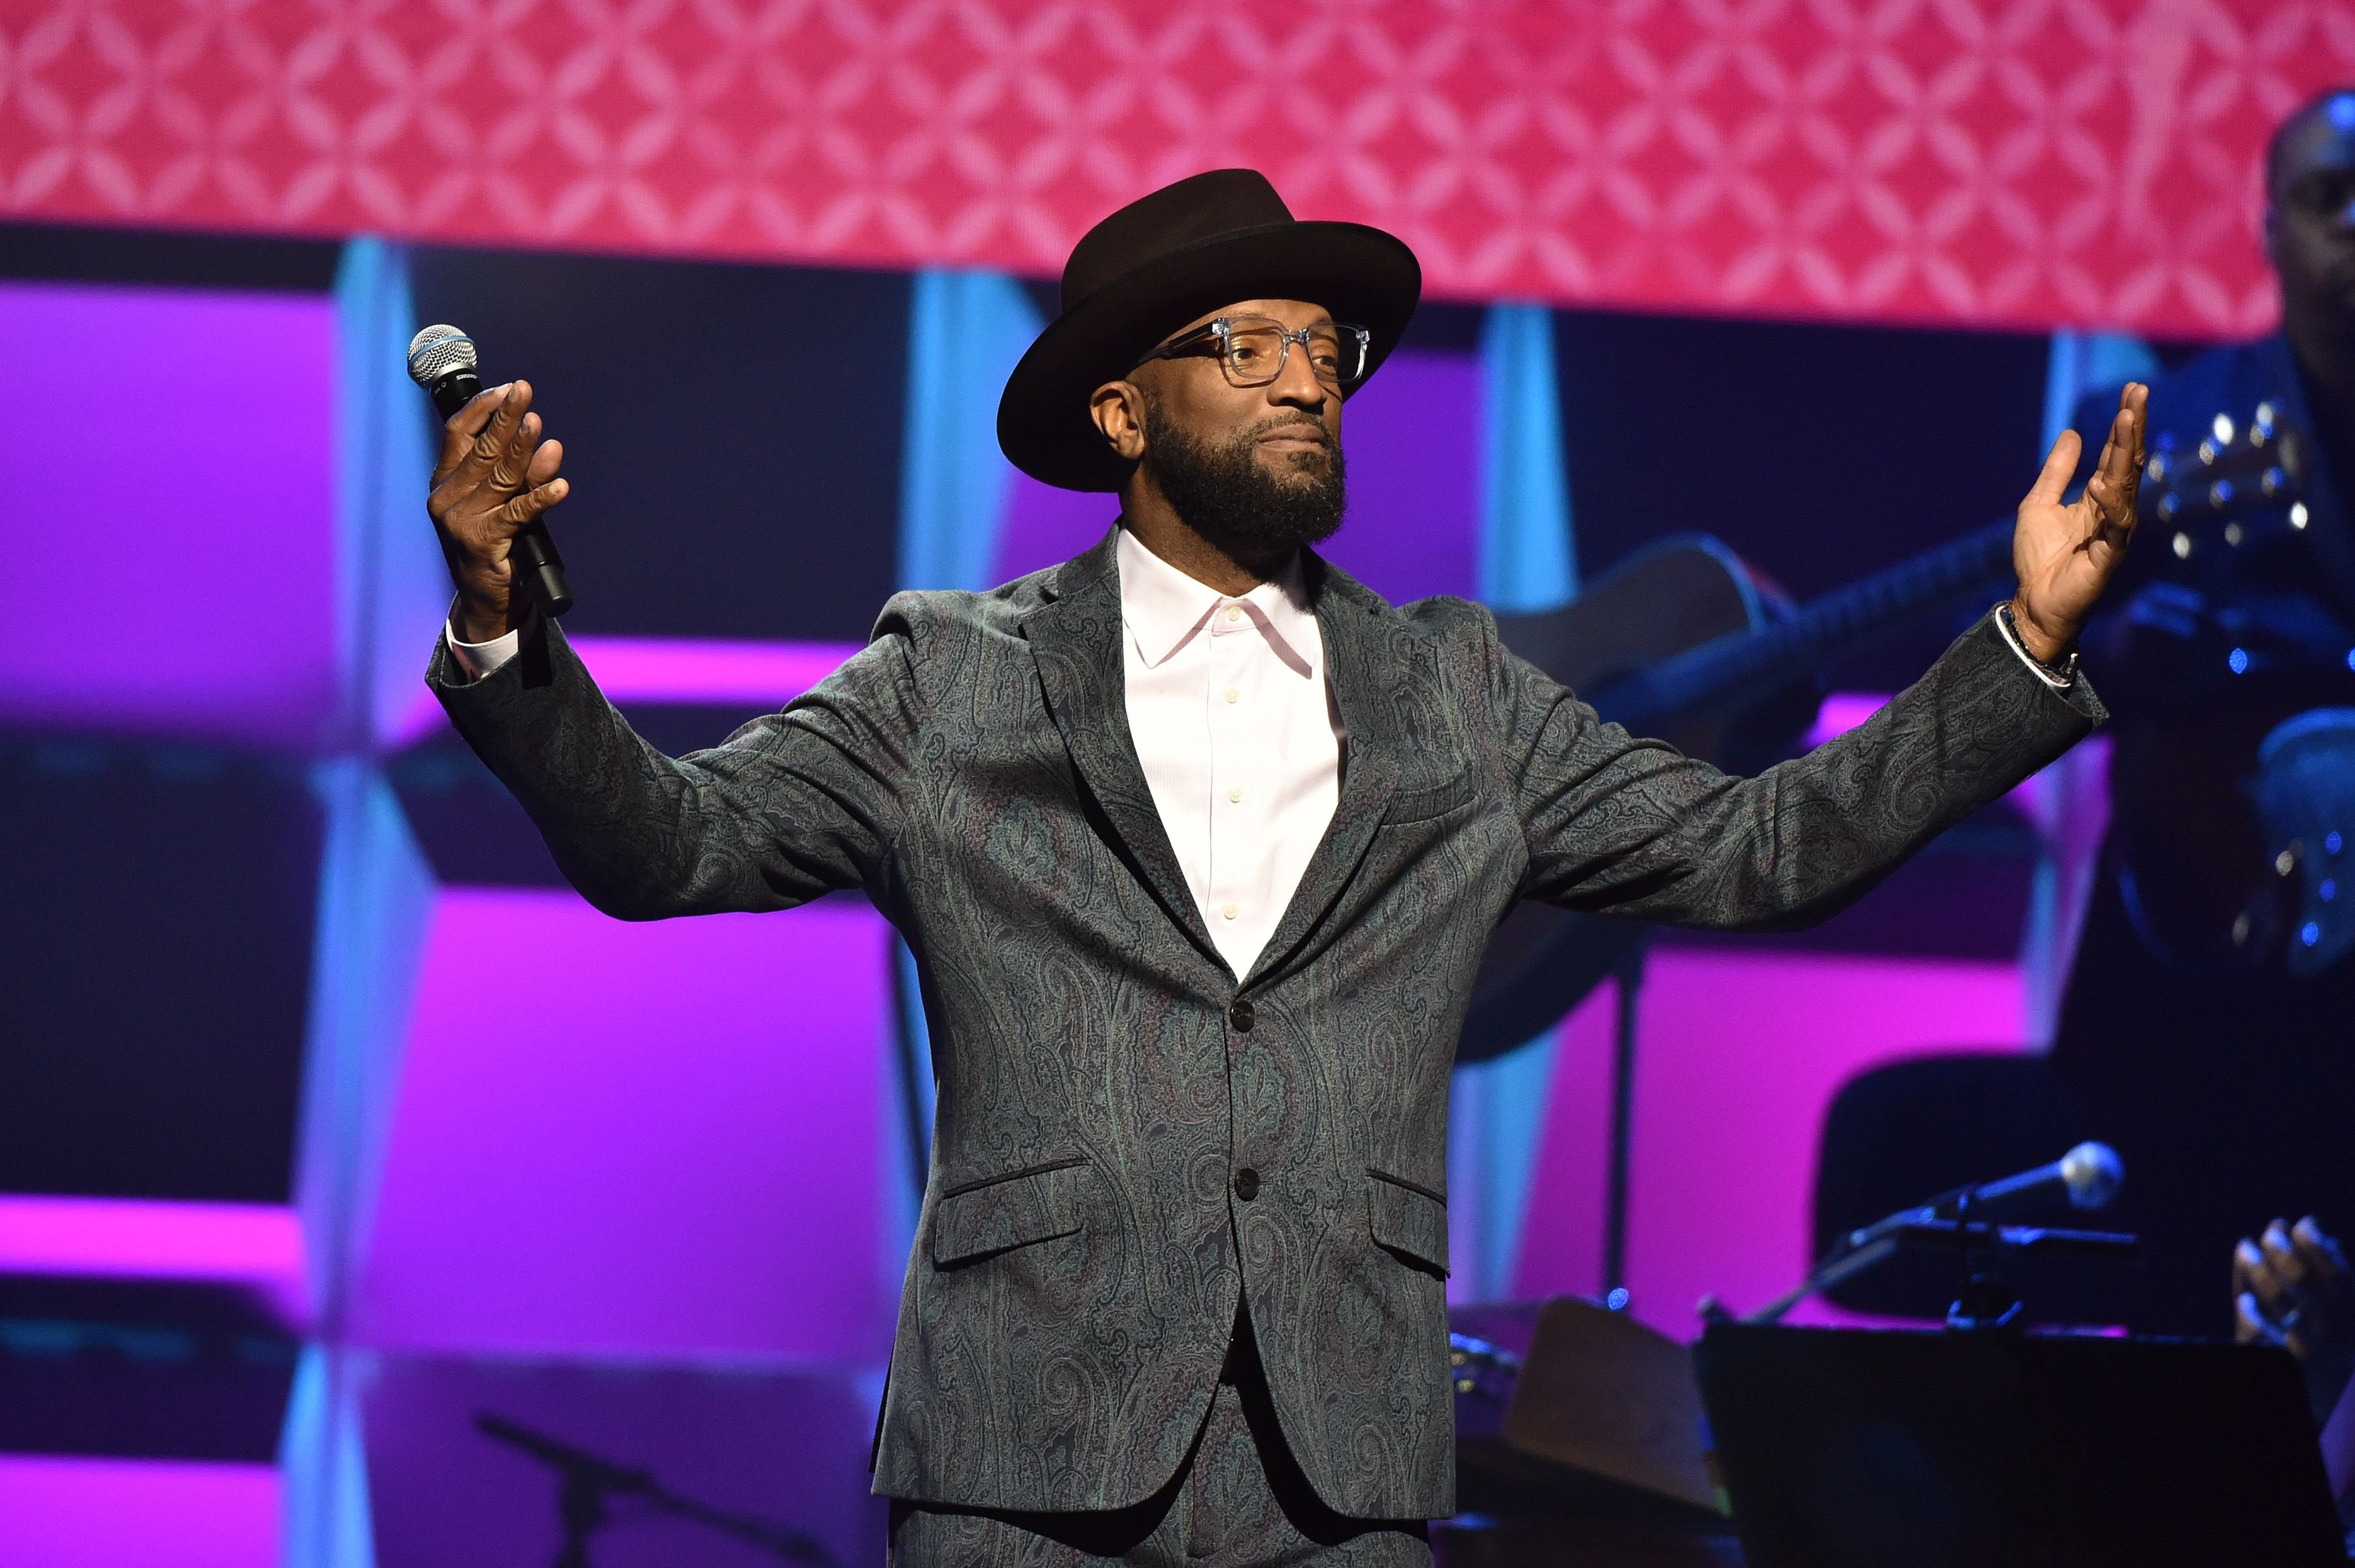 Rickey Smiley hosted the BET Super Bowl Gospel Celebration at the James L. Knight Center on January 30, 2020 in Miami, Florida | Photo: Getty Images